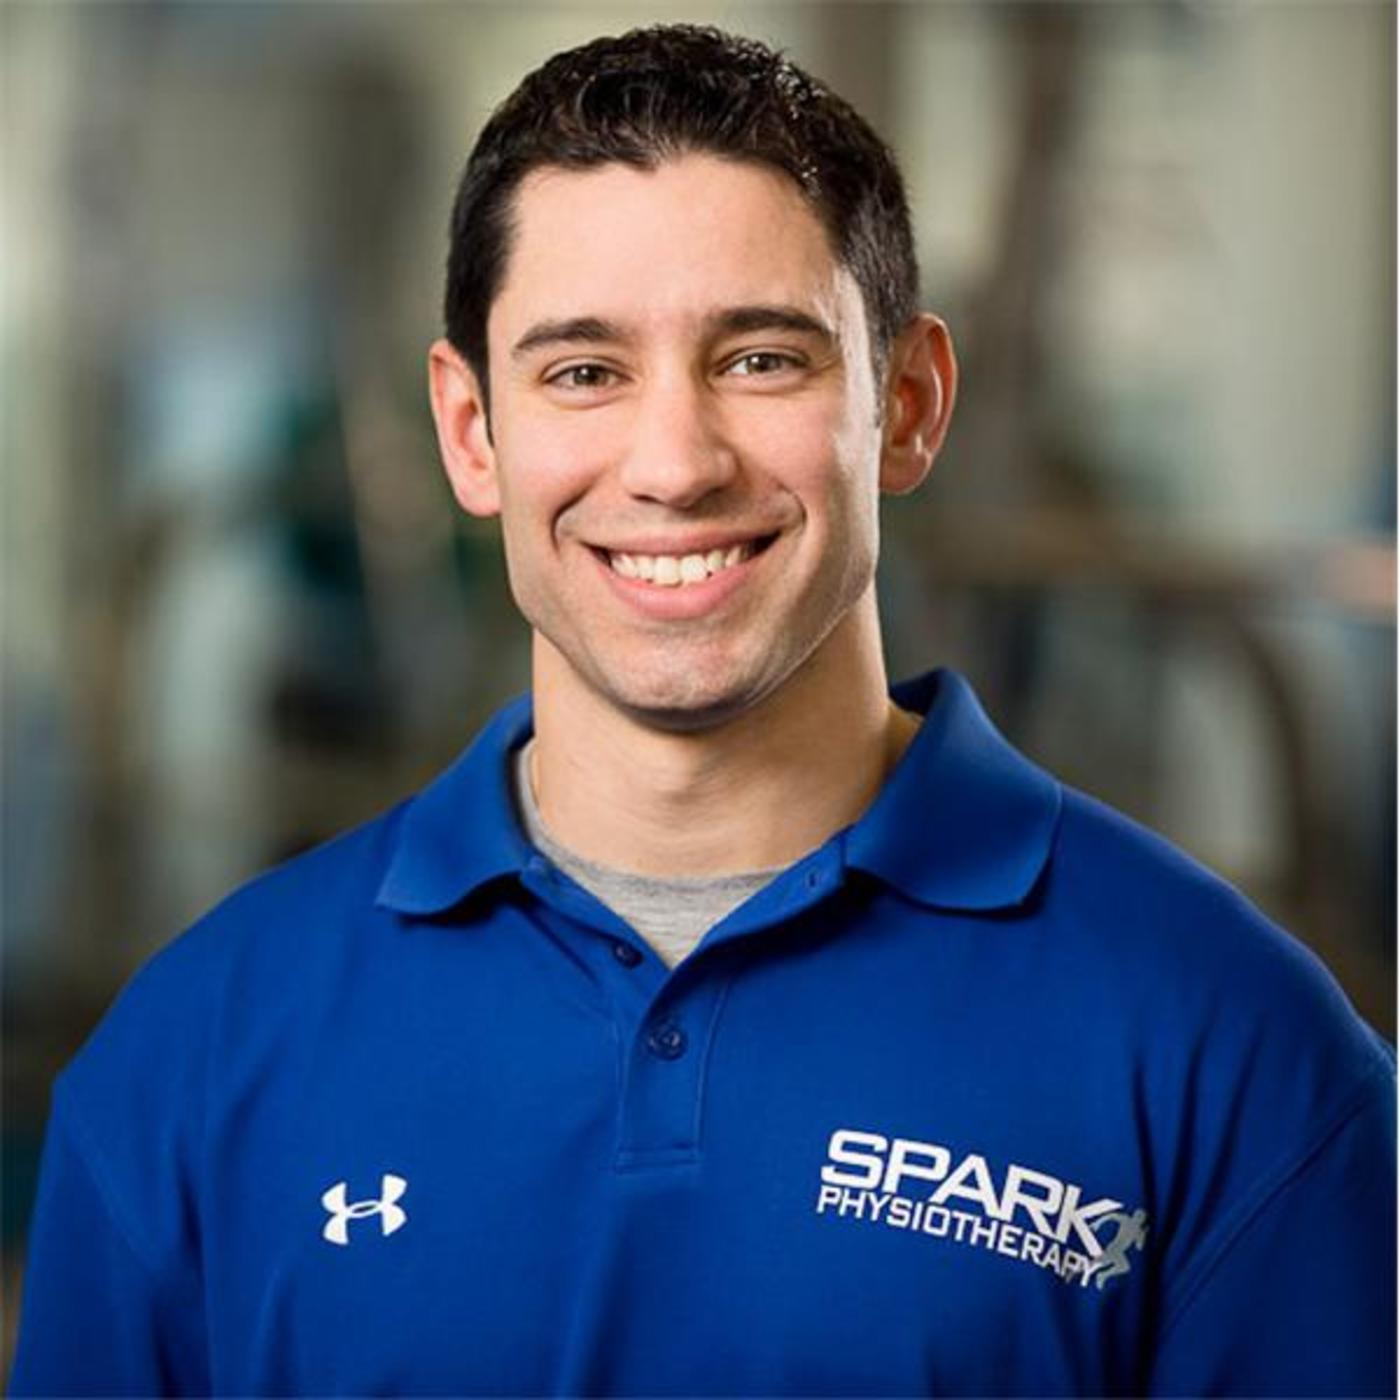 SPARK Physiotherapy